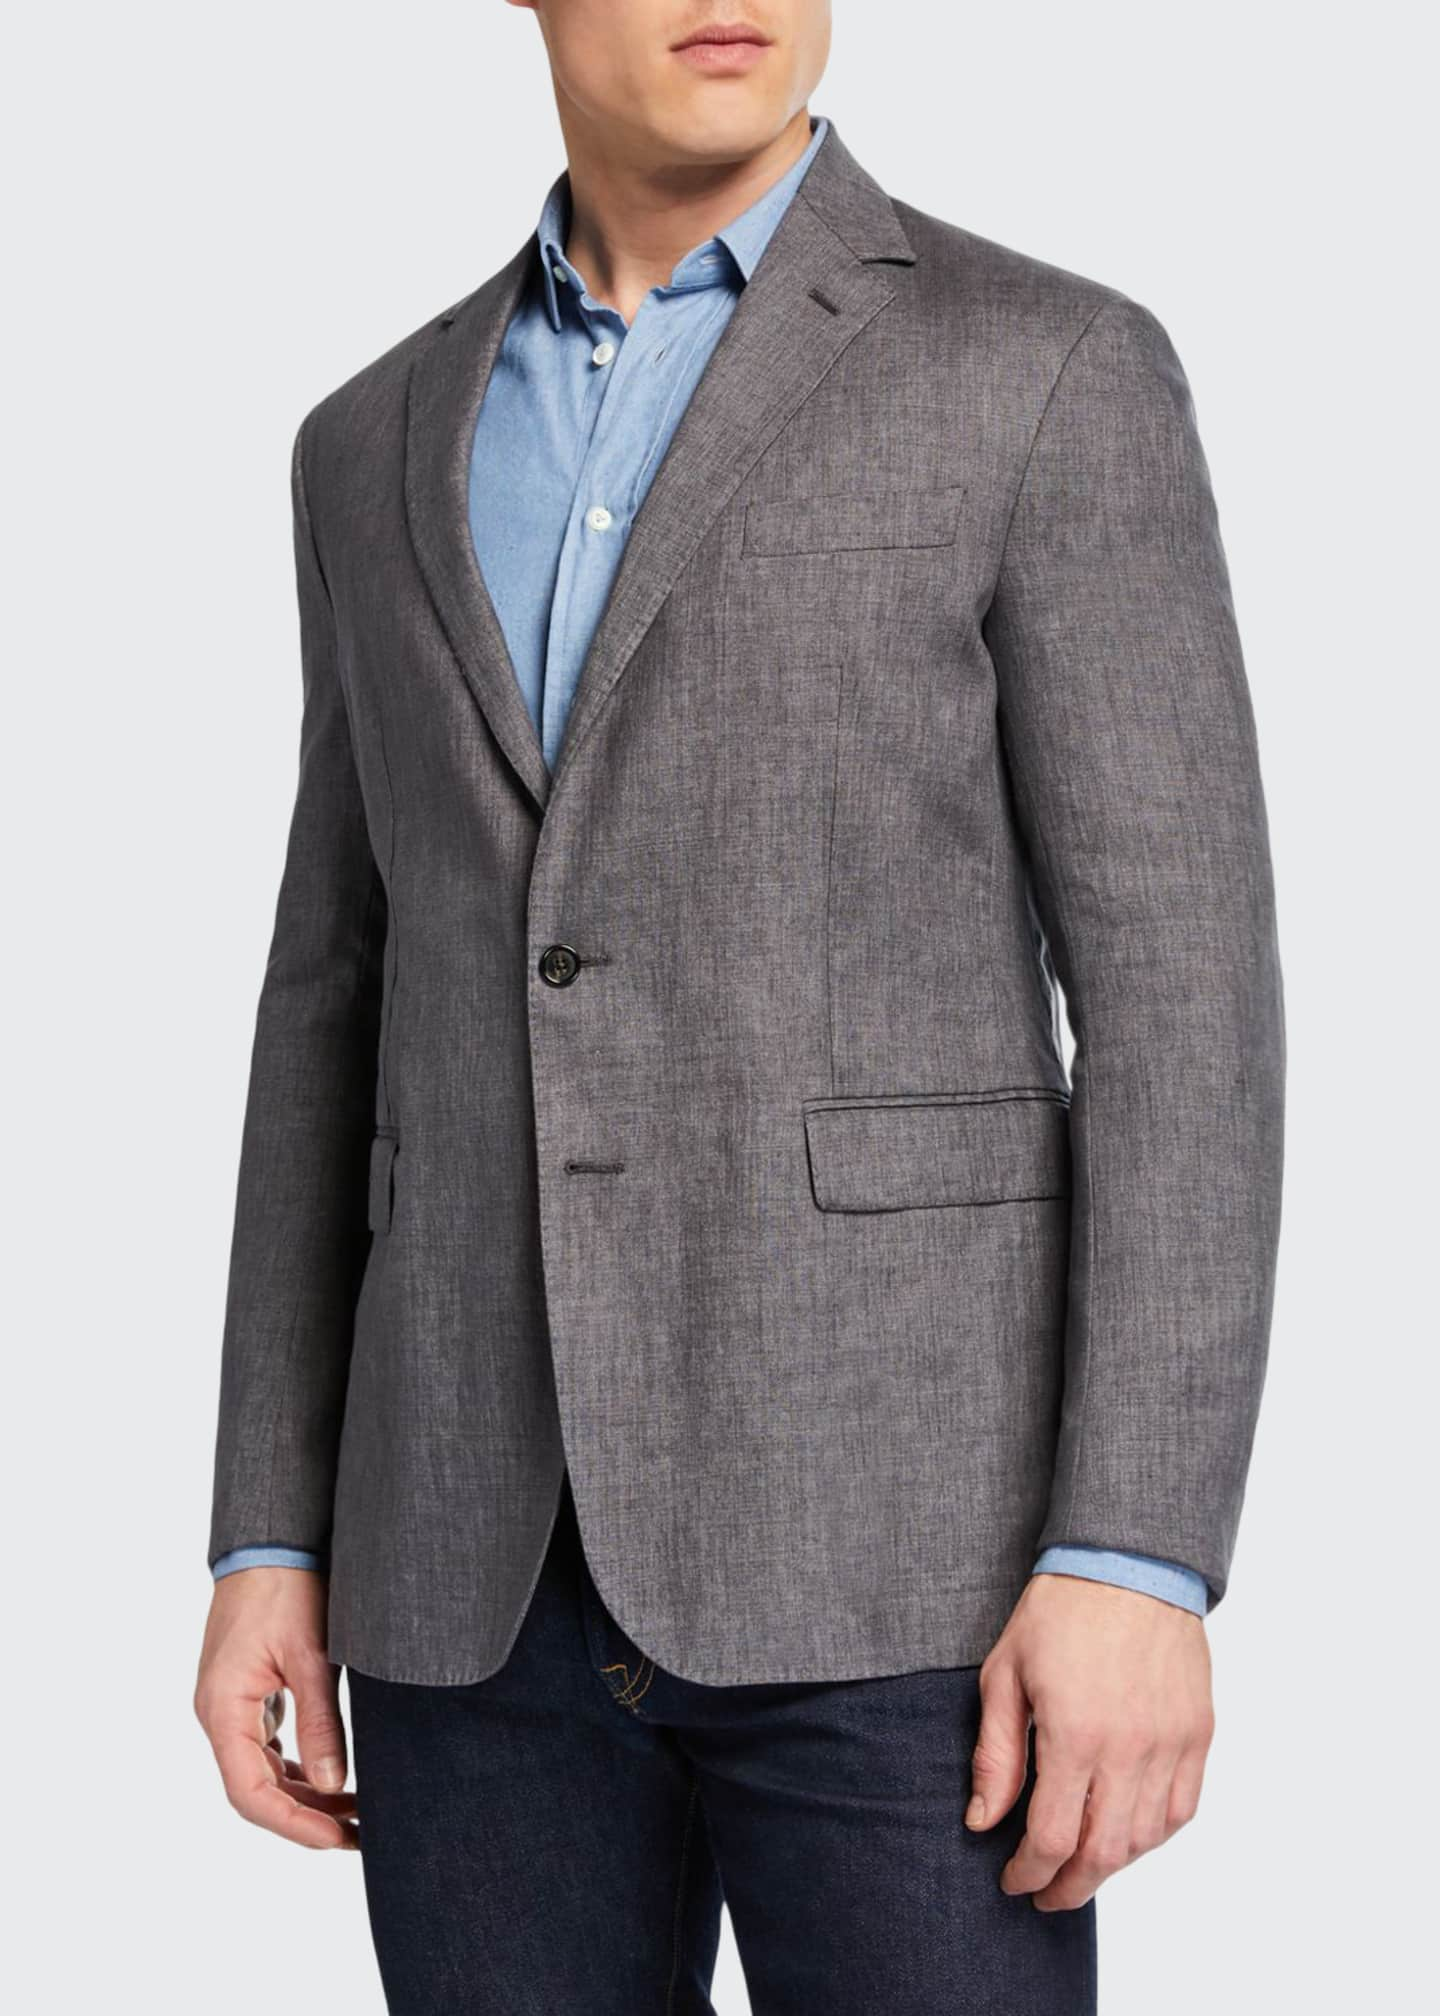 Ralph Lauren Men's Hadley Two-Button Linen Jacket